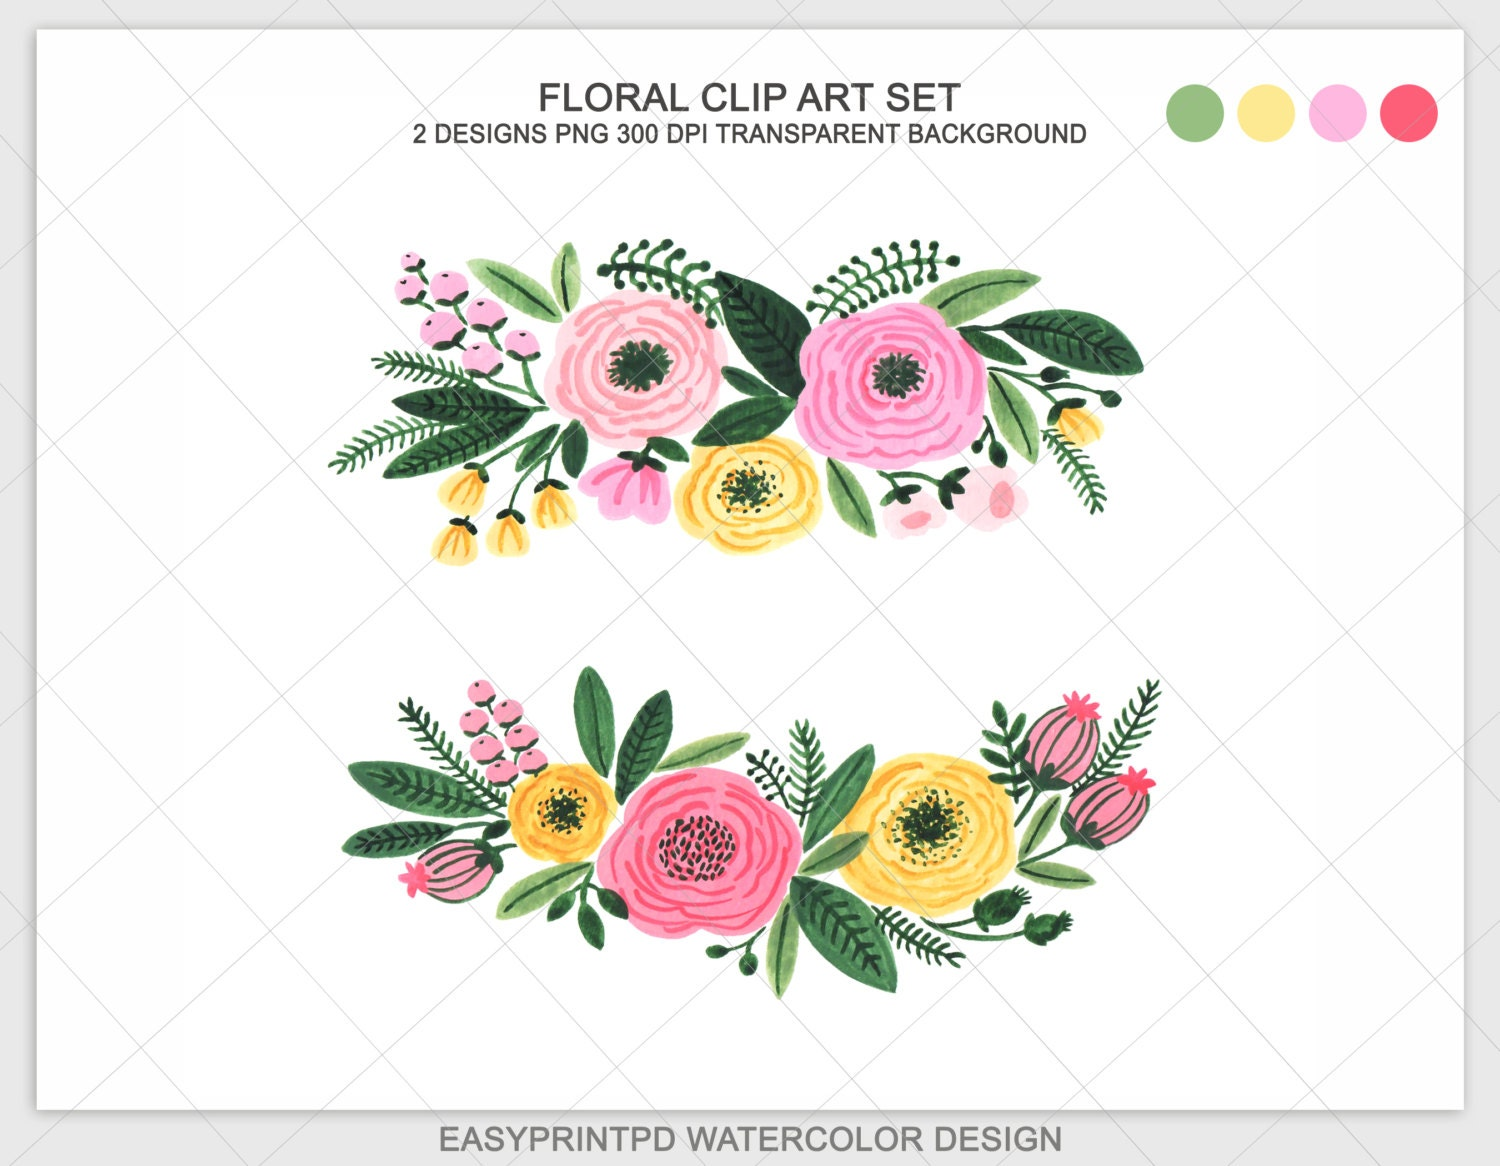 watercolor floral clipart watercolor flowers floral clip rh etsy com floral clip art free floral clipart free